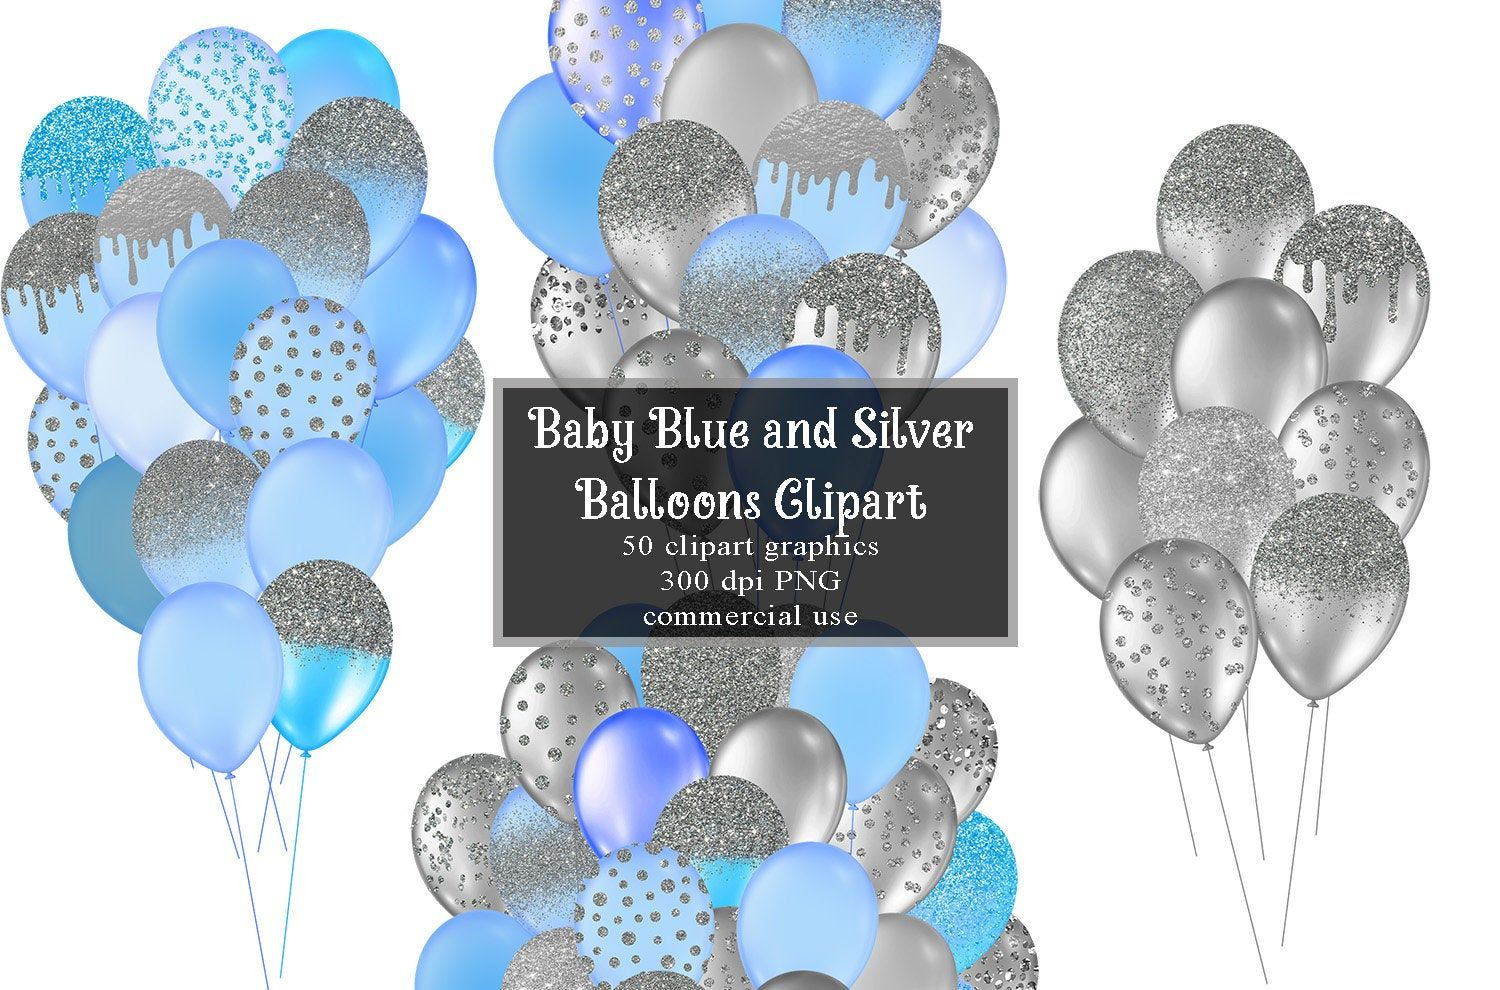 Baby Blue And Silver Balloons Clipart Glitter Balloon Png Etsy Clip Art Glitter Balloons Balloon Clipart